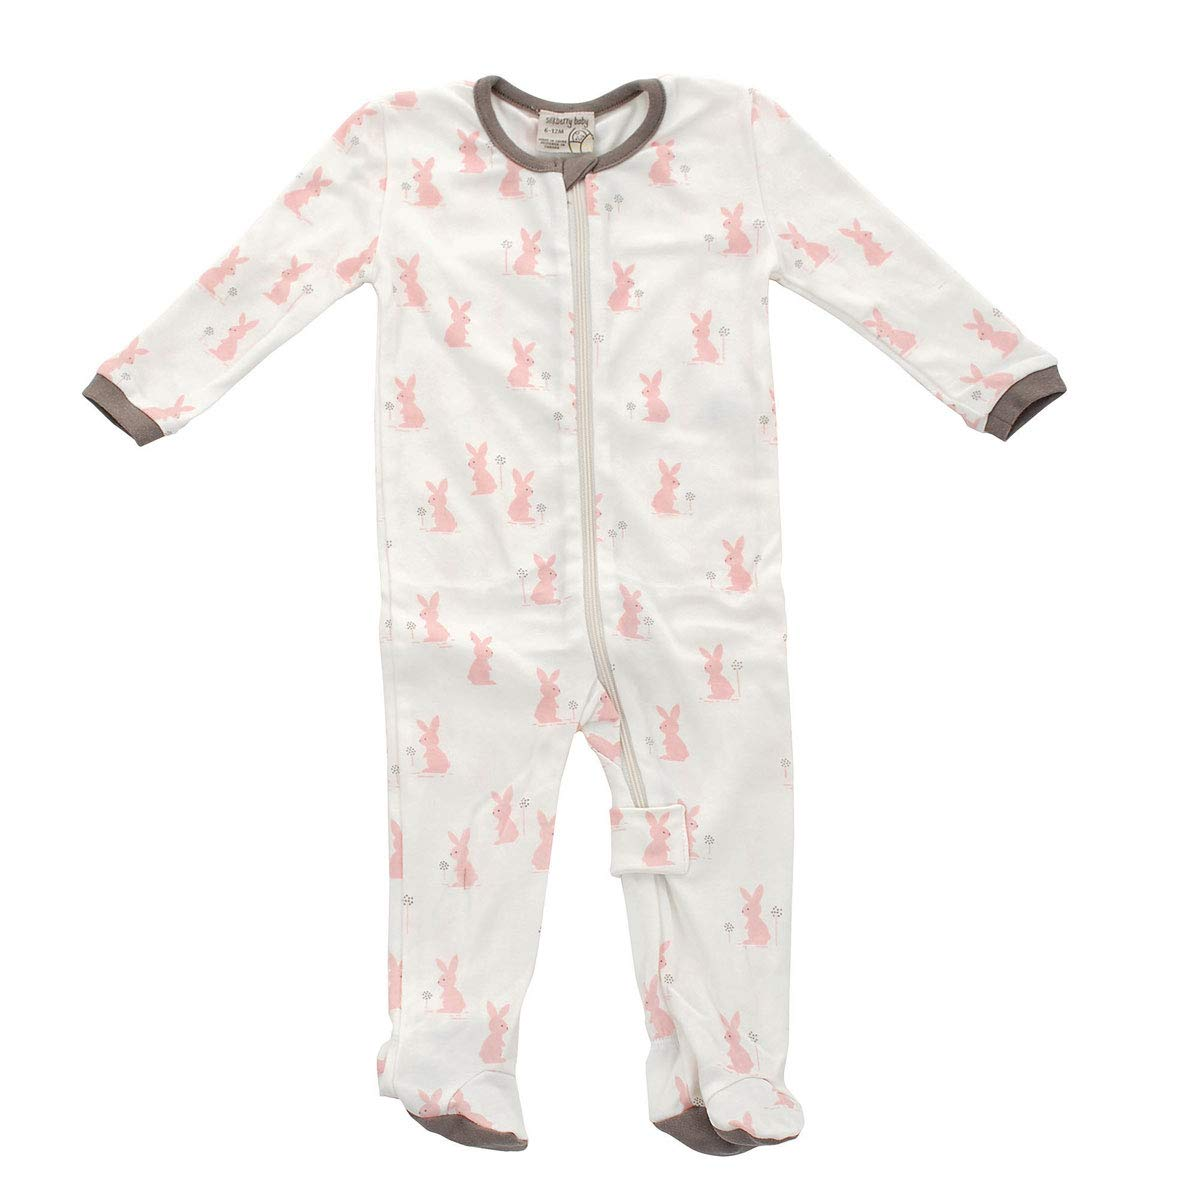 Silkberry Baby Organic Cotton Footies with Zipper (Girl & Unisex)